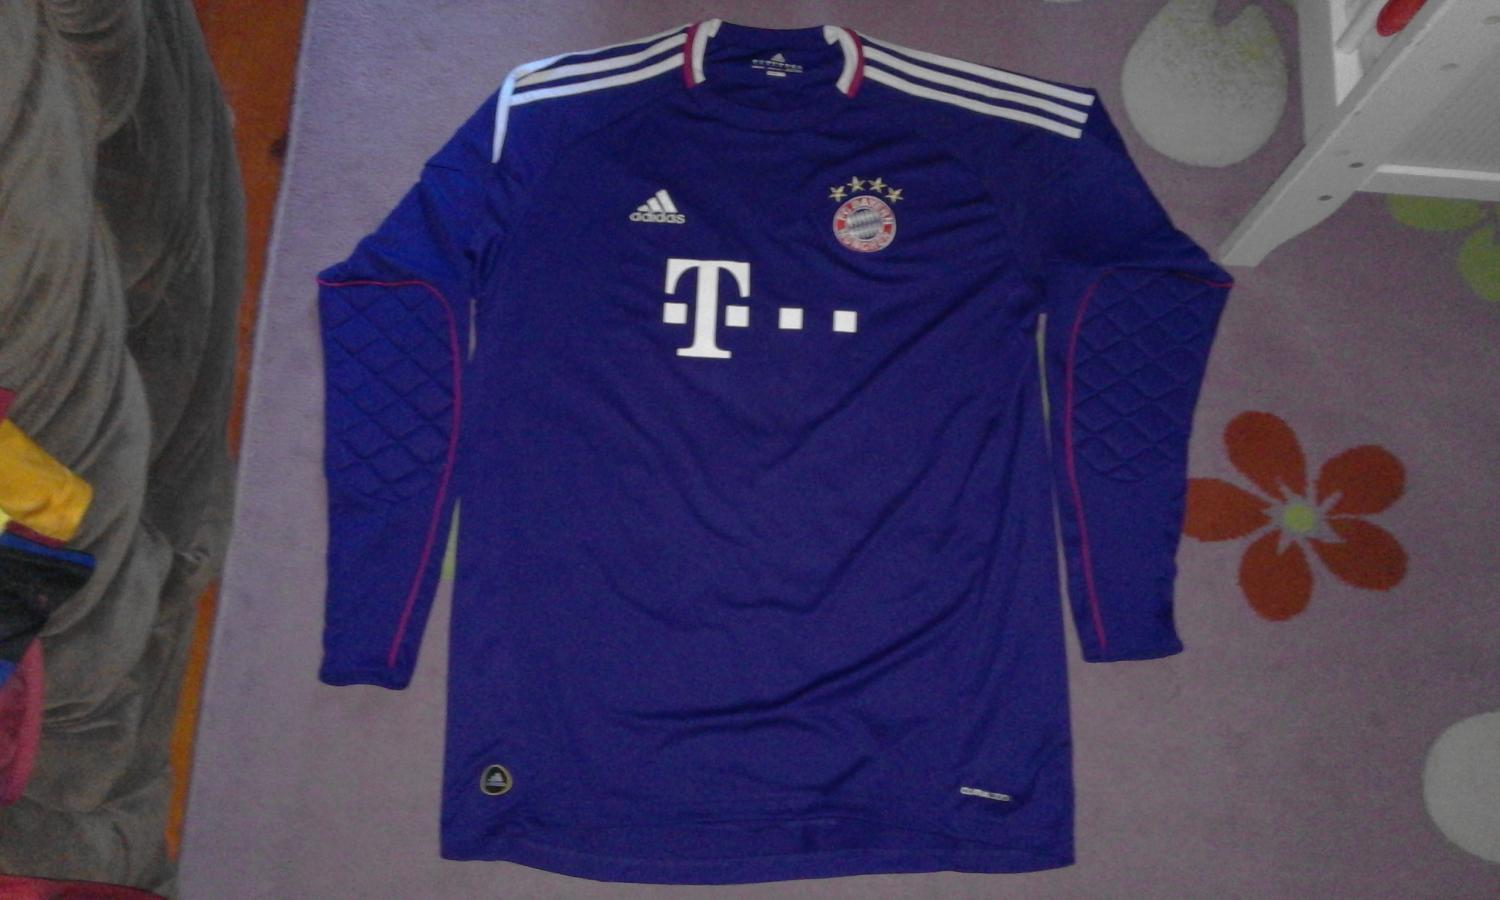 c3866463d Bayern Munich Goalkeeper Camiseta de Fútbol 2010 - 2011. Sponsored ...